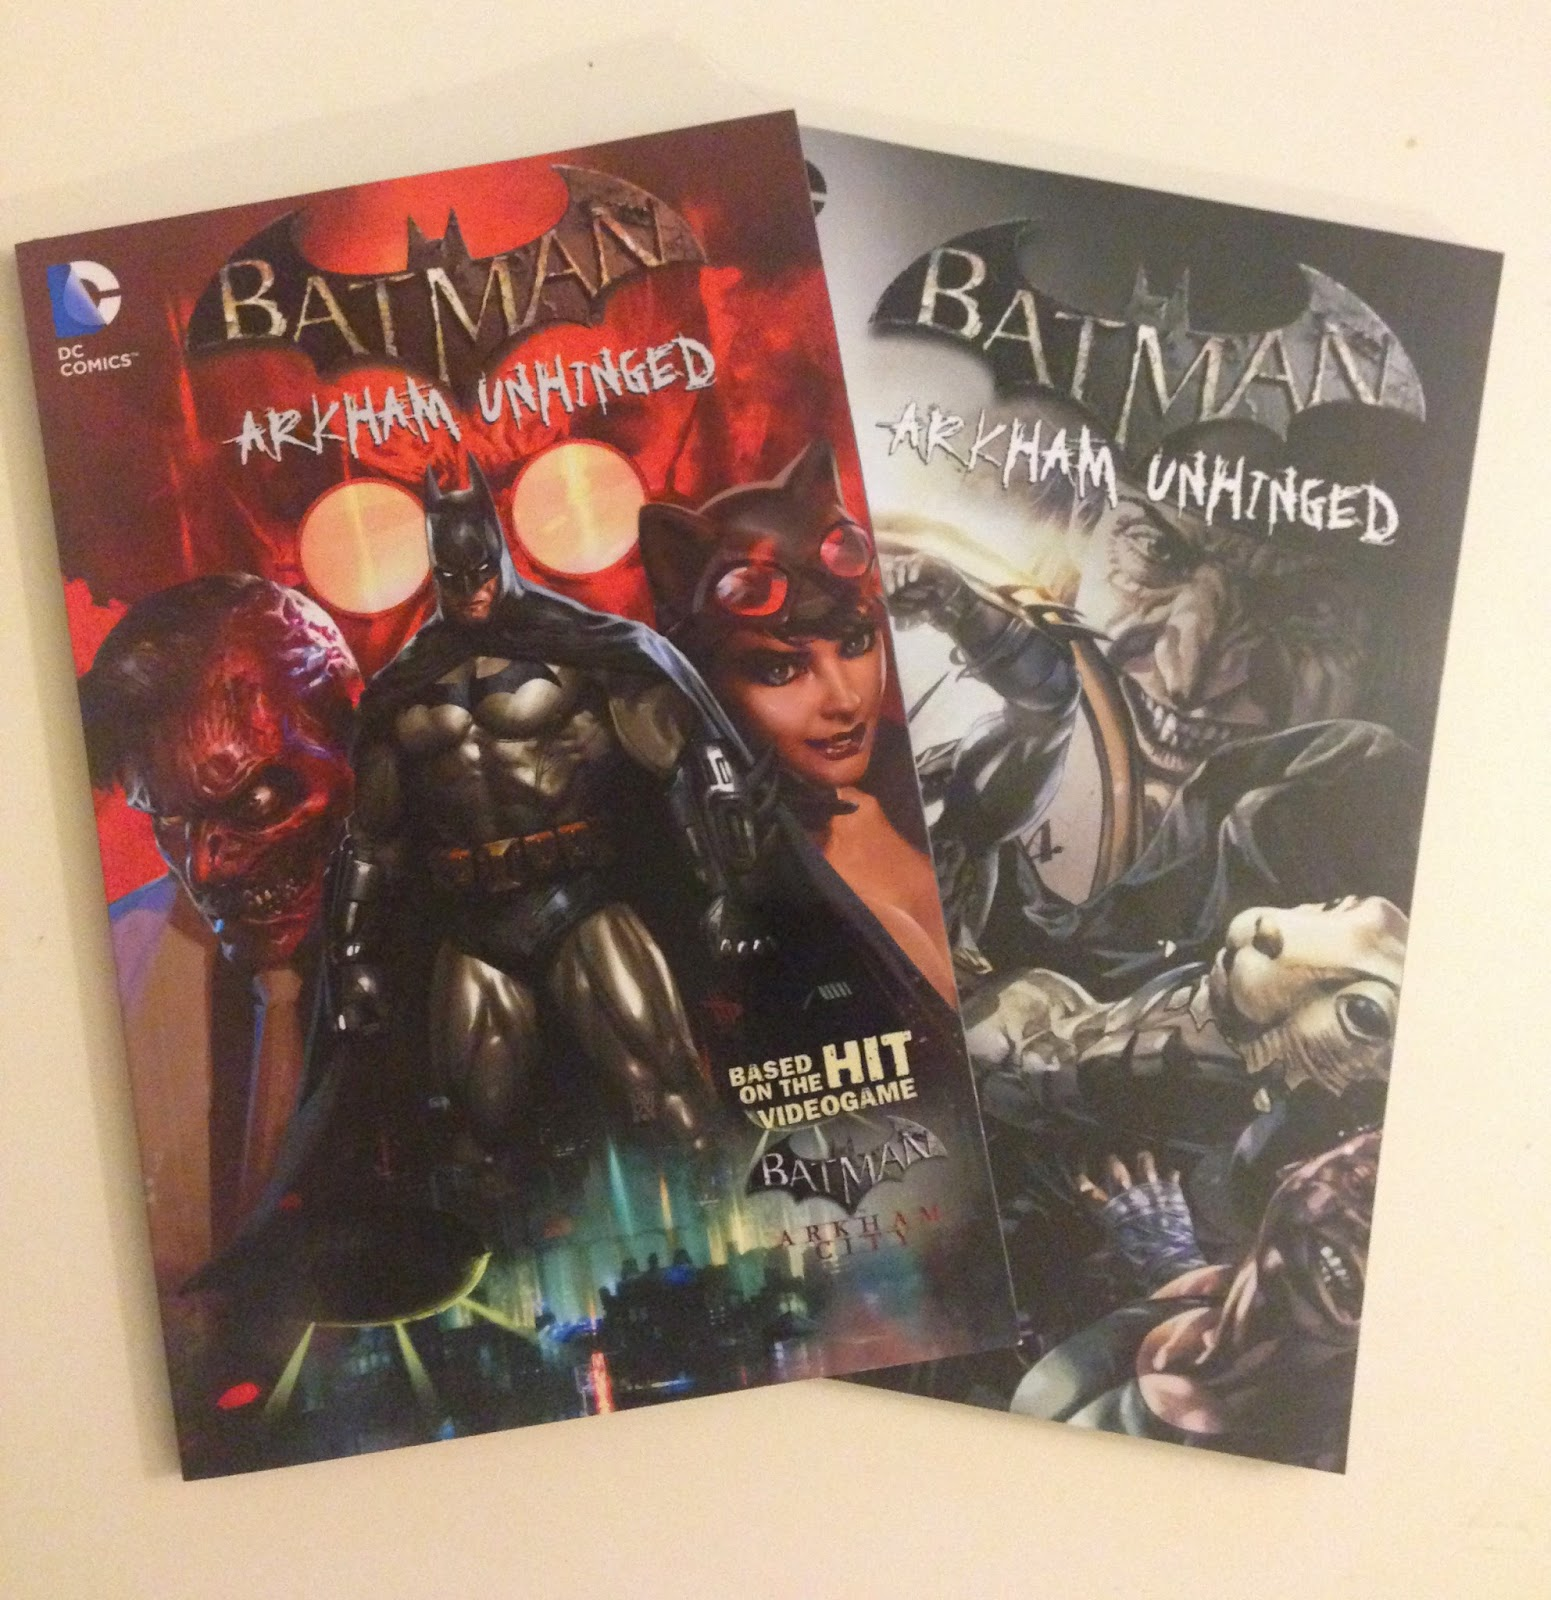 batman gotham arkham comic book